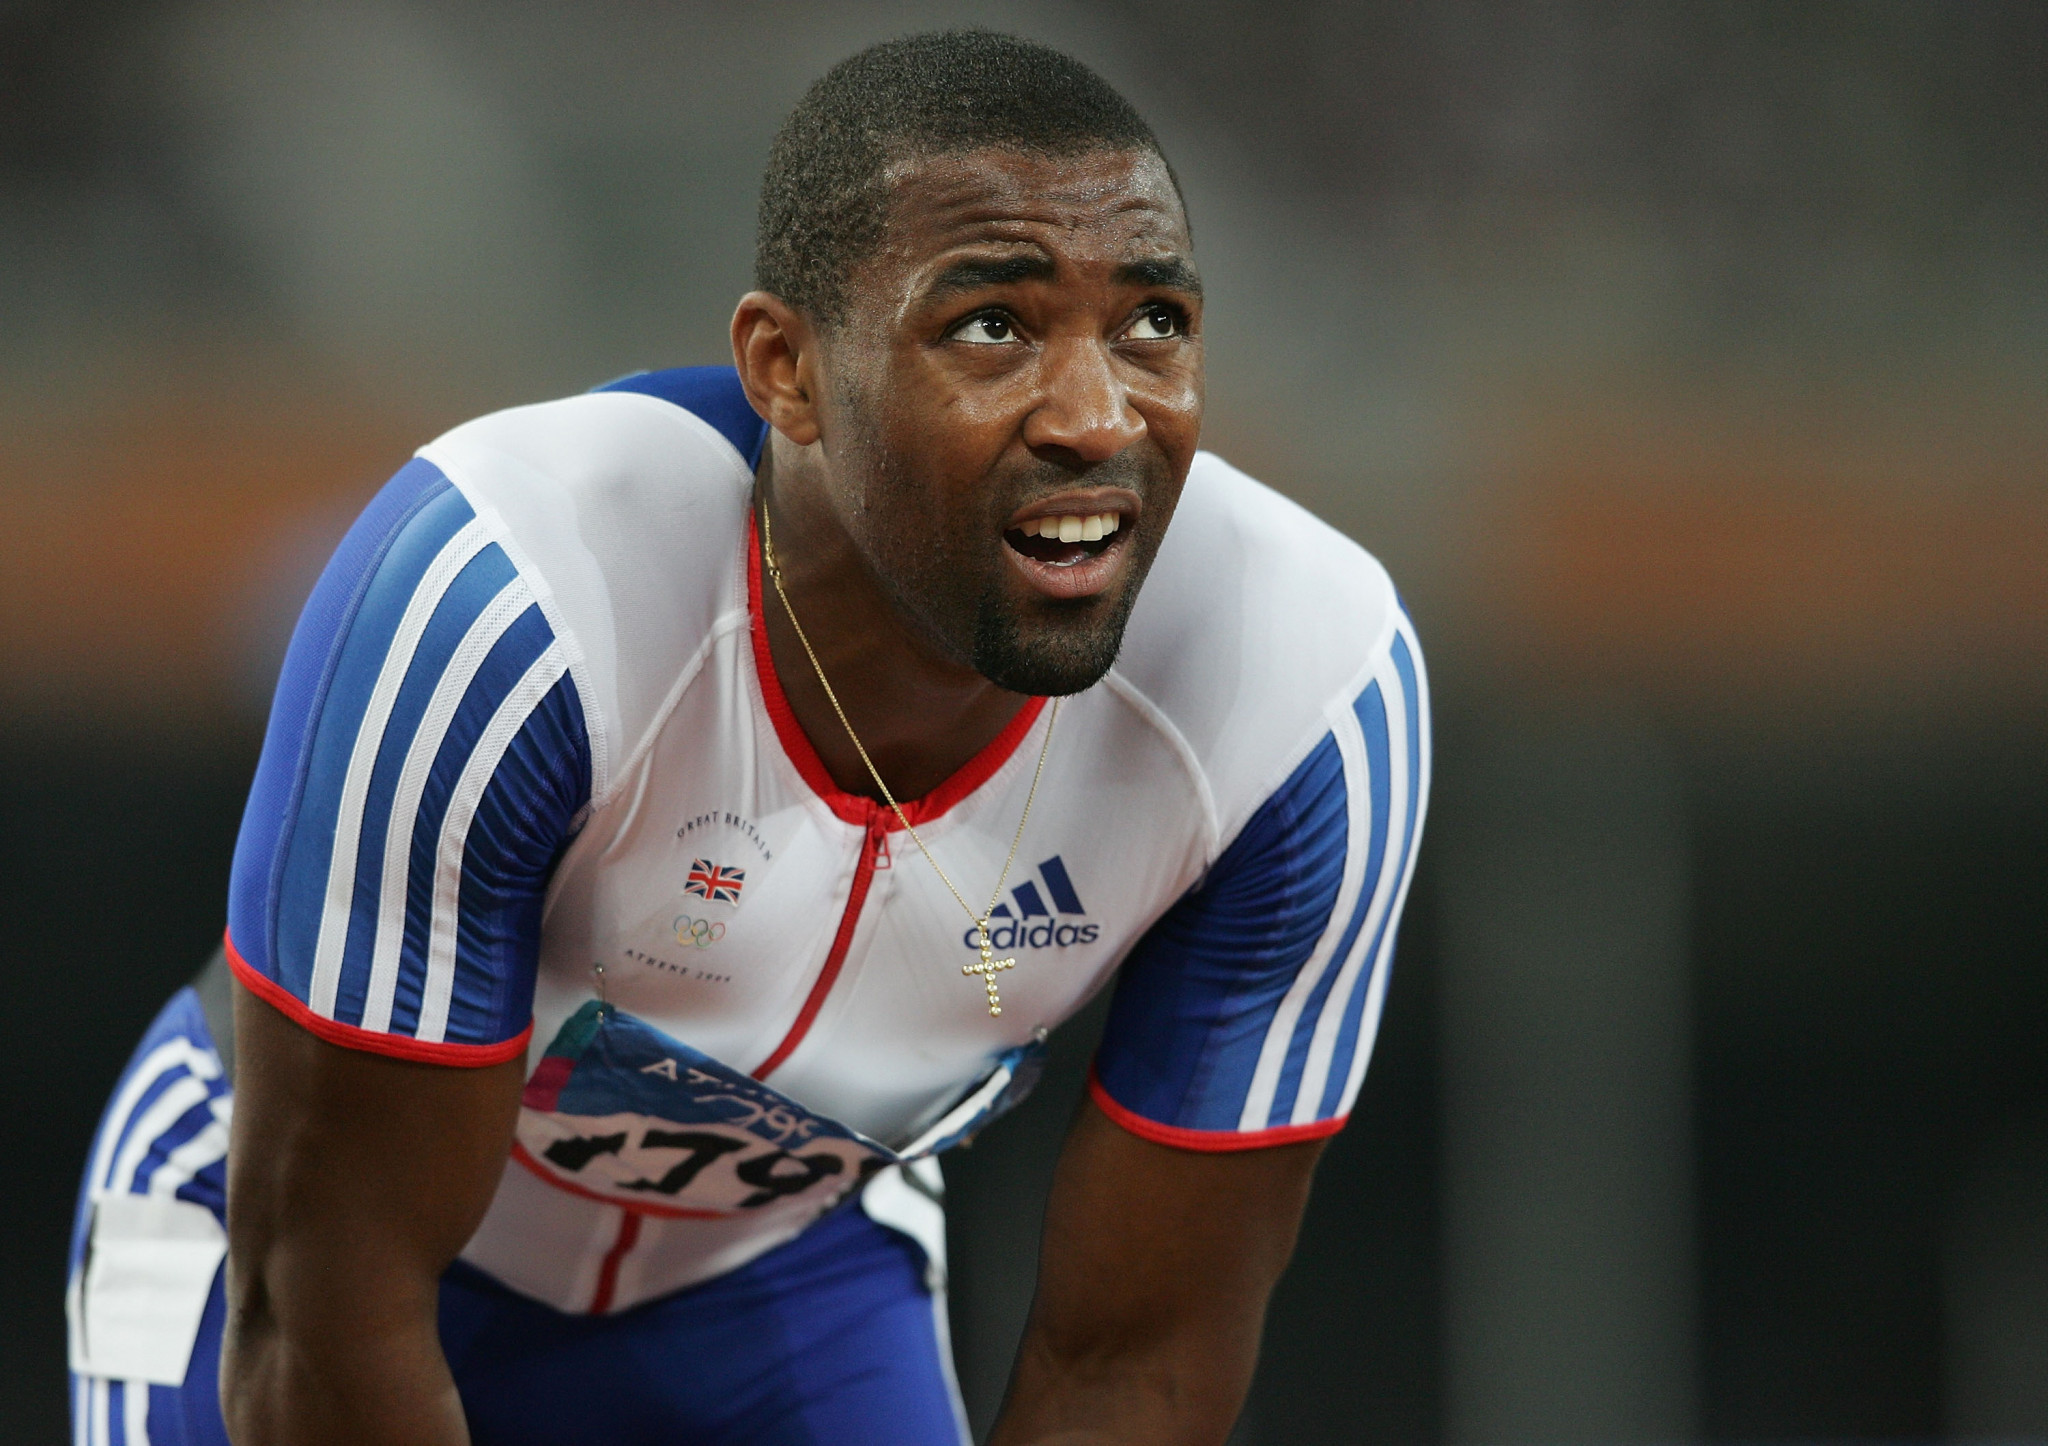 Olympic champion Campbell to oversee UK sprint relay team for Tokyo 2020